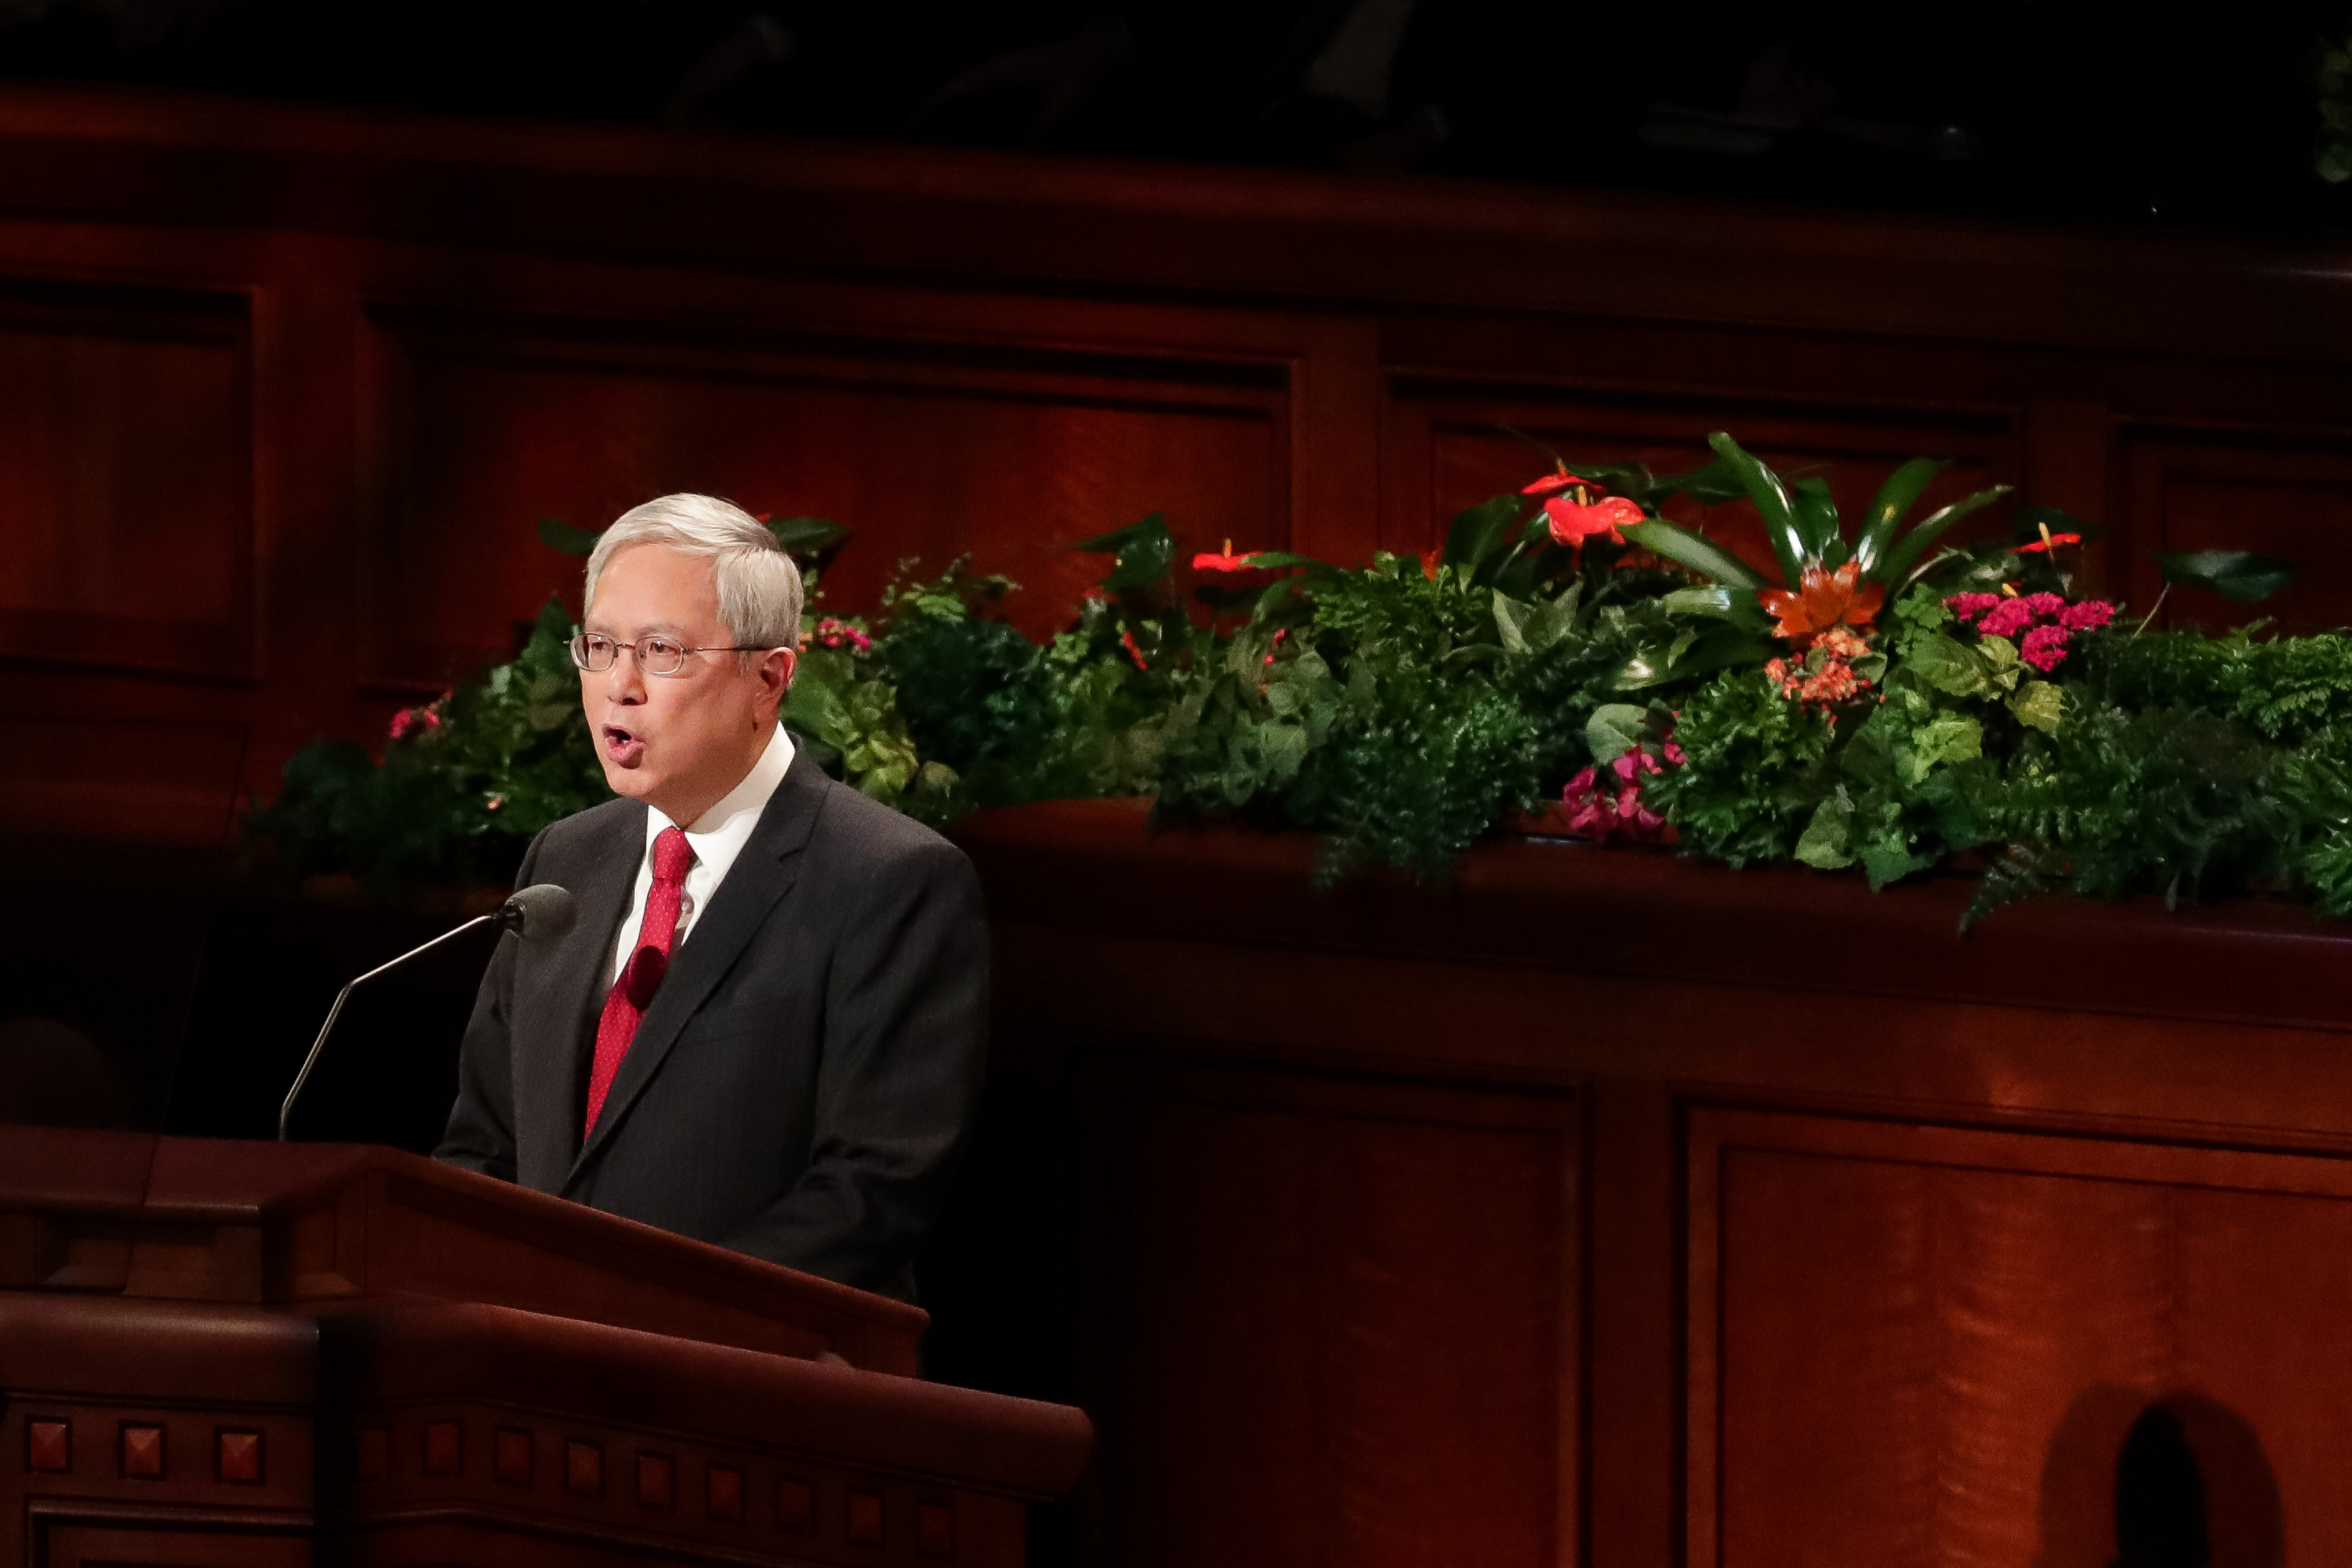 Elder Gerrit W. Gong of the Quorum of the Twelve Apostles speaks during the Saturday afternoon session of the 188th Semiannual General Conference of The Church of Jesus Christ of Latter-day Saints in the Conference Center in Salt Lake City on Saturday, Oct. 6, 2018.